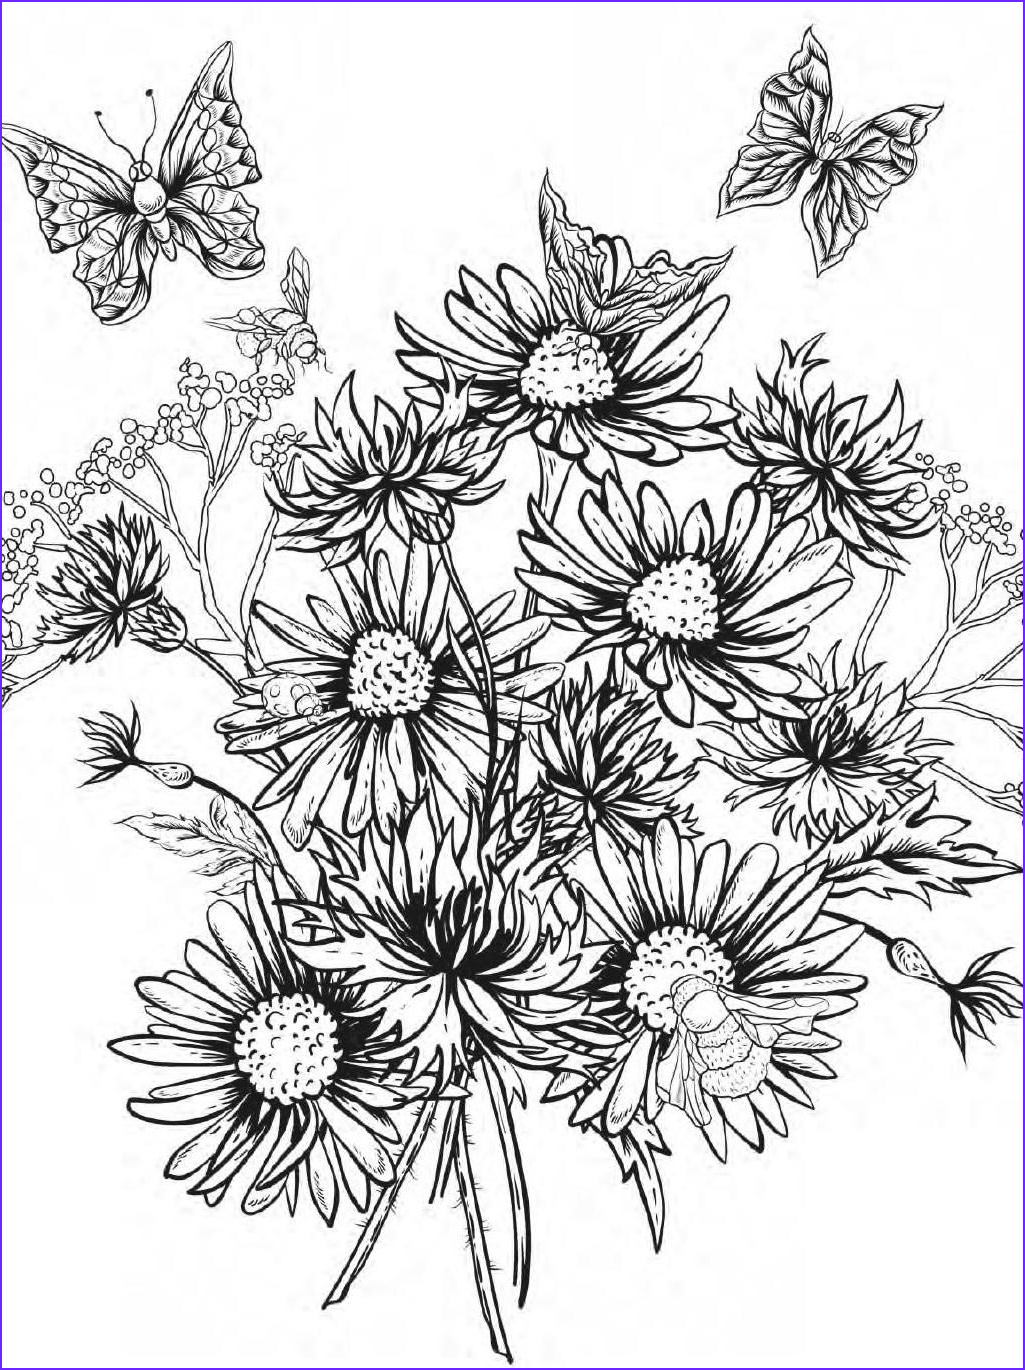 Flower Designs Coloring Book Best Of Gallery Beautiful Flowers Detailed Floral Designs Coloring Book